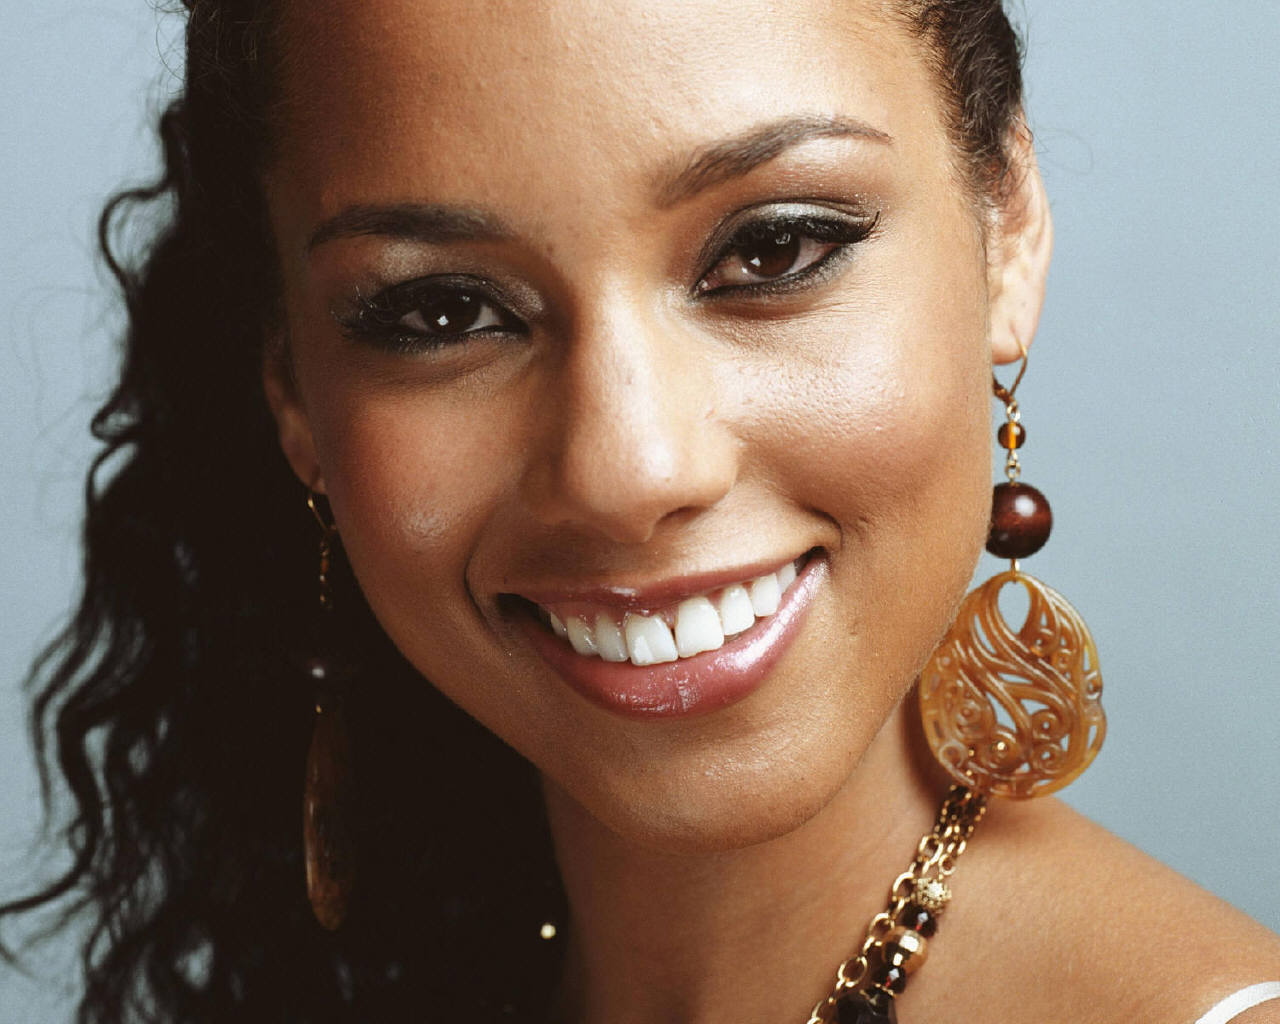 Alicia Keys: Alicia Keys=jessica Alba ? Pictures Of Them Together